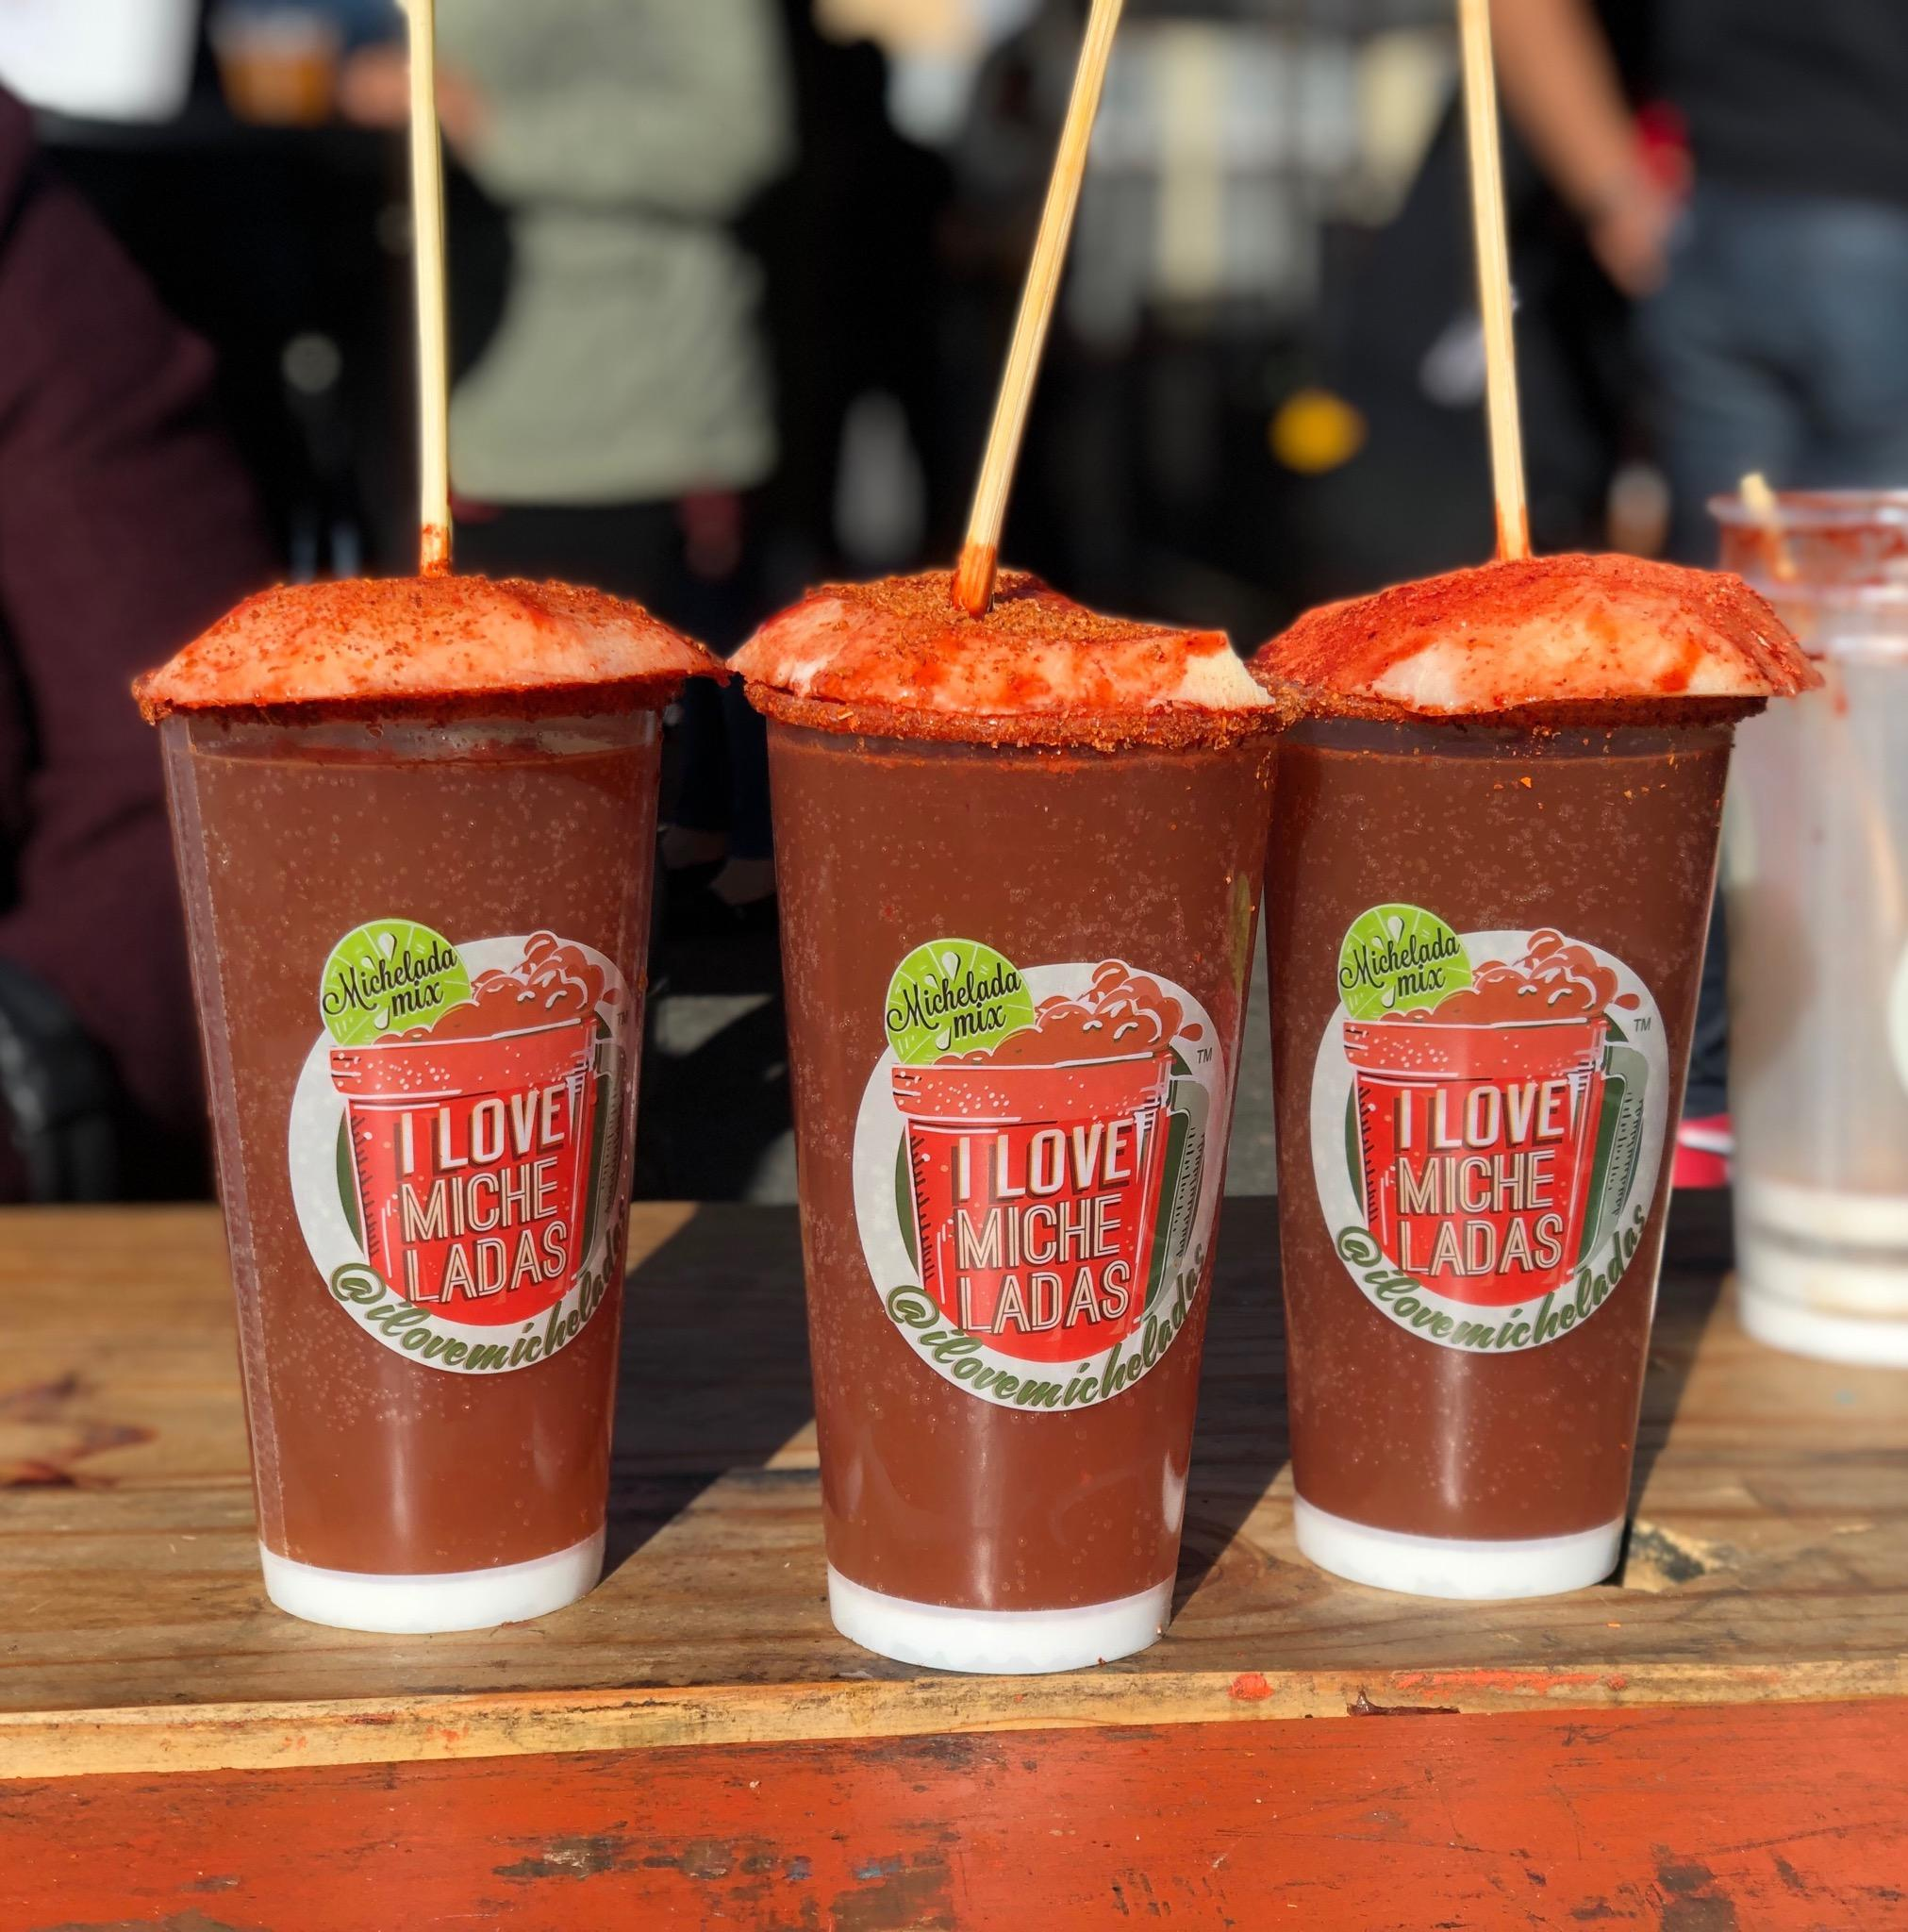 Hecho In L.A. - Every second Sunday of the month at Smorgasburg